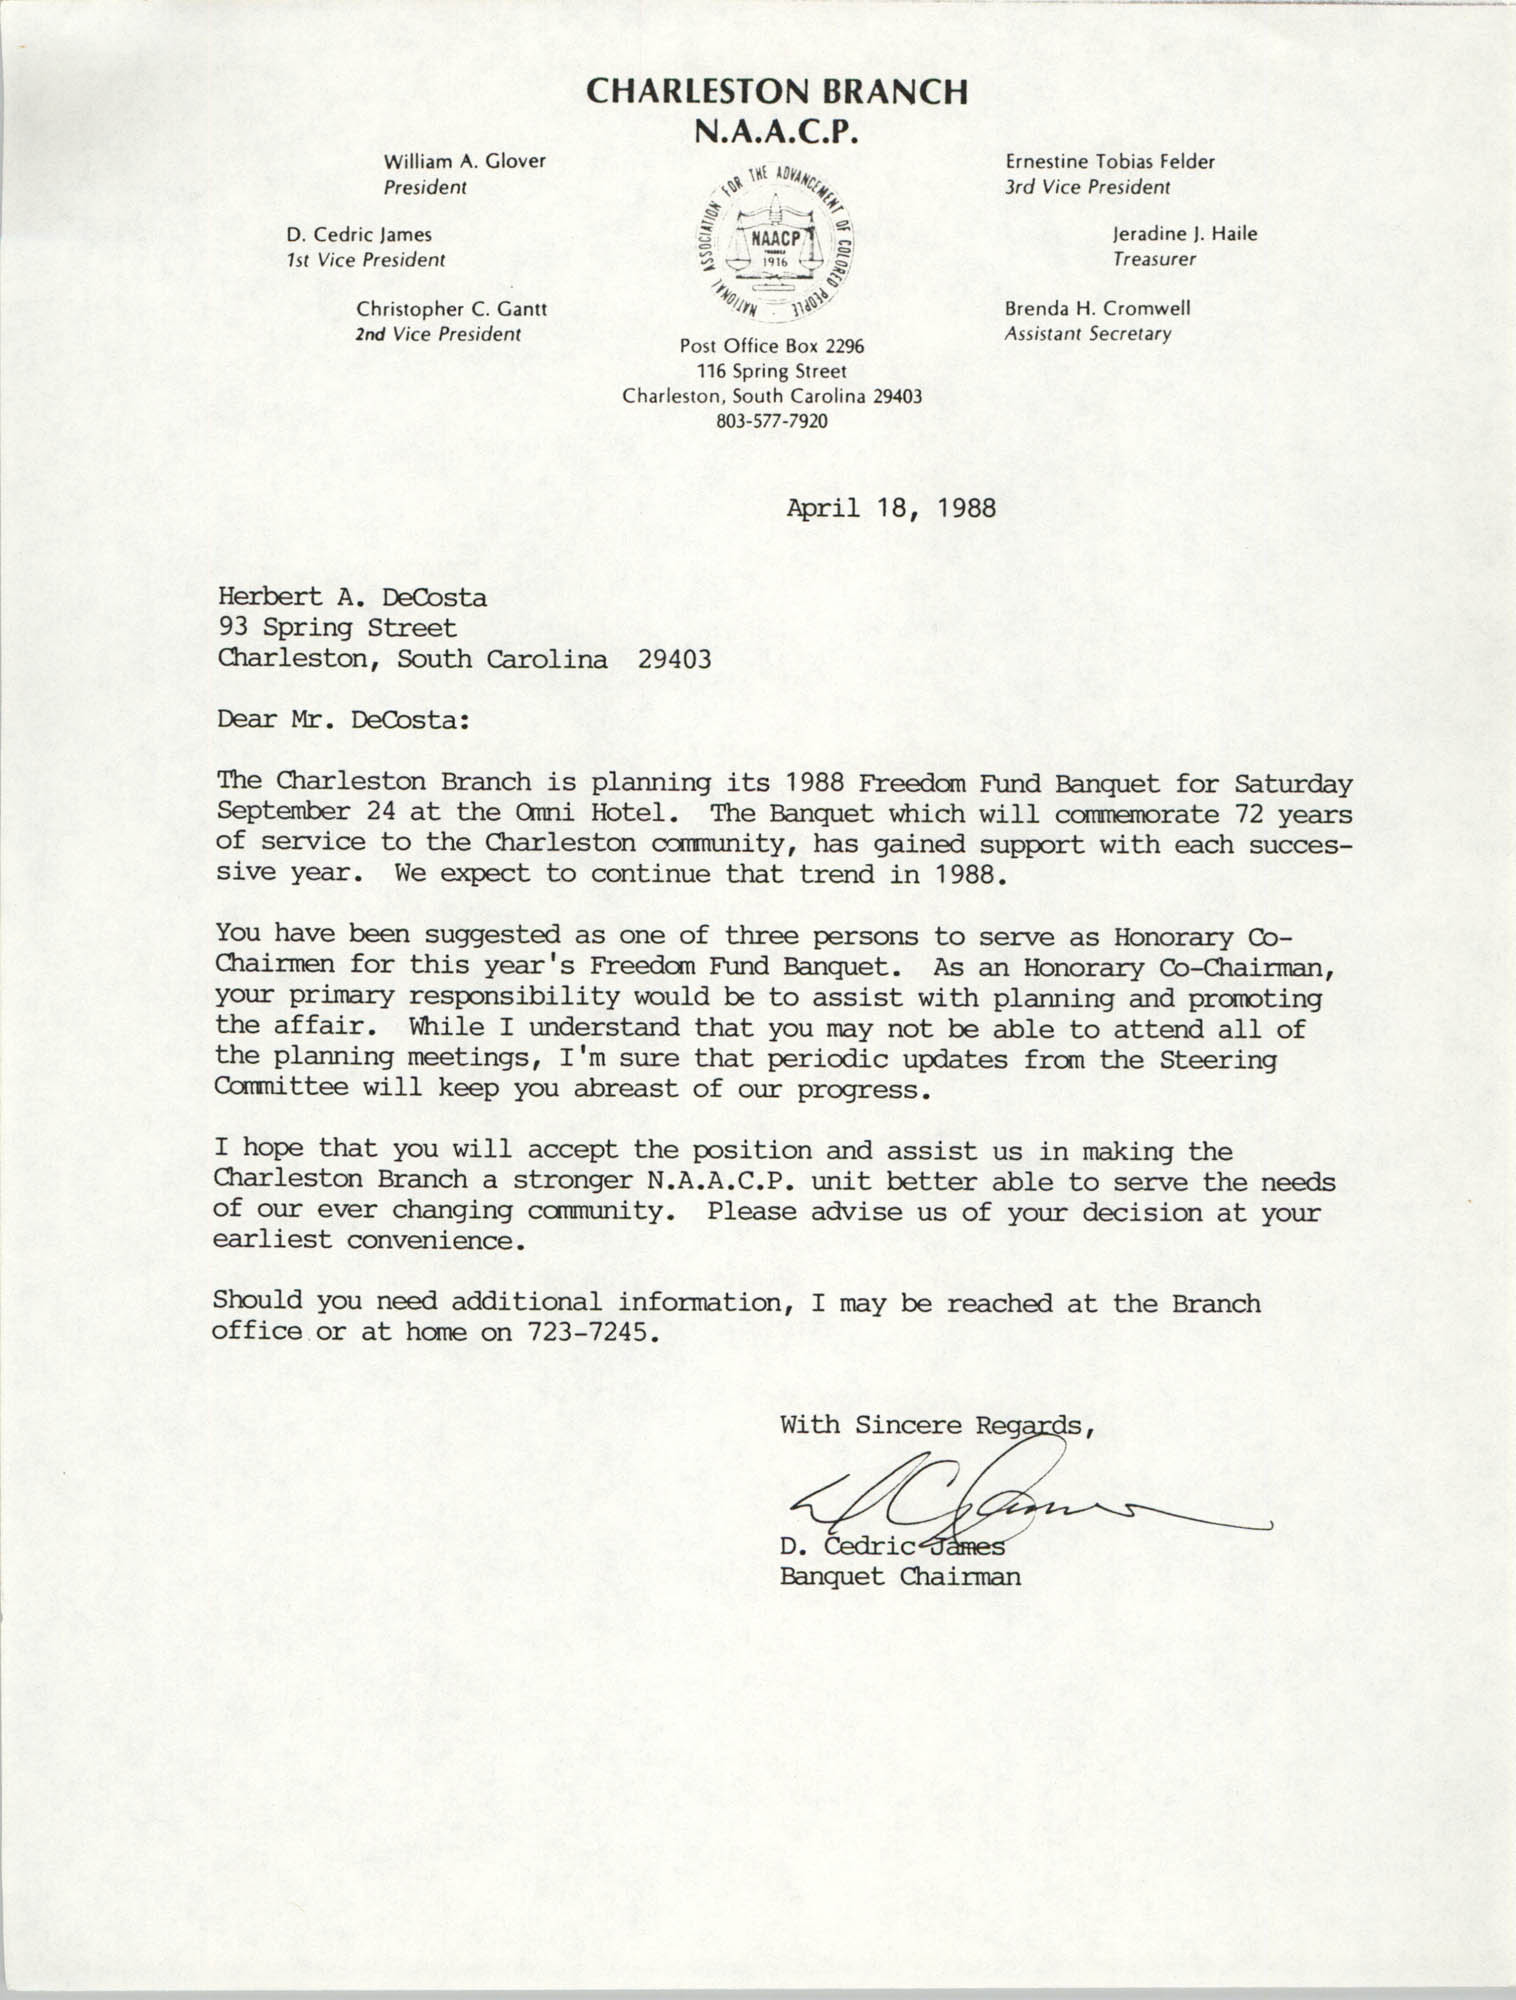 Letter from D. Cedric James to Herbert A. DeCosta, April 18, 1988